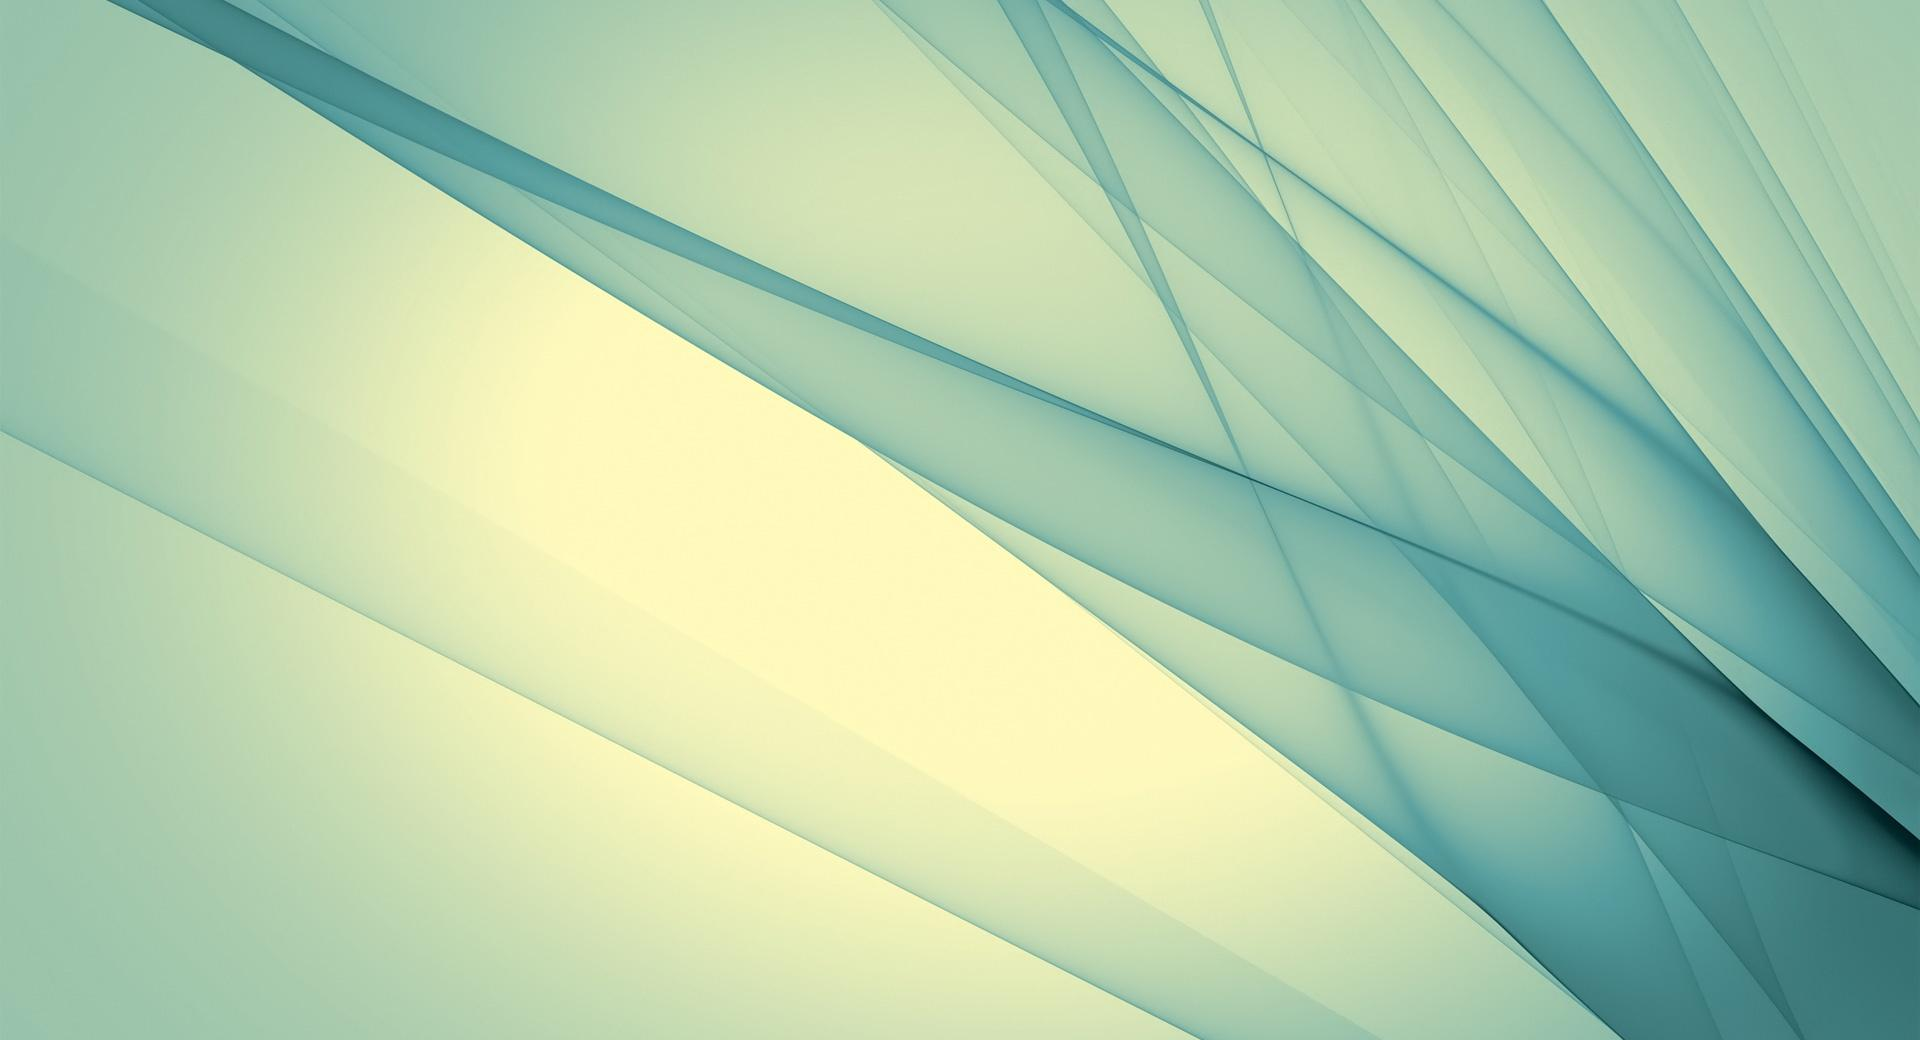 Abstract Background wallpapers HD quality